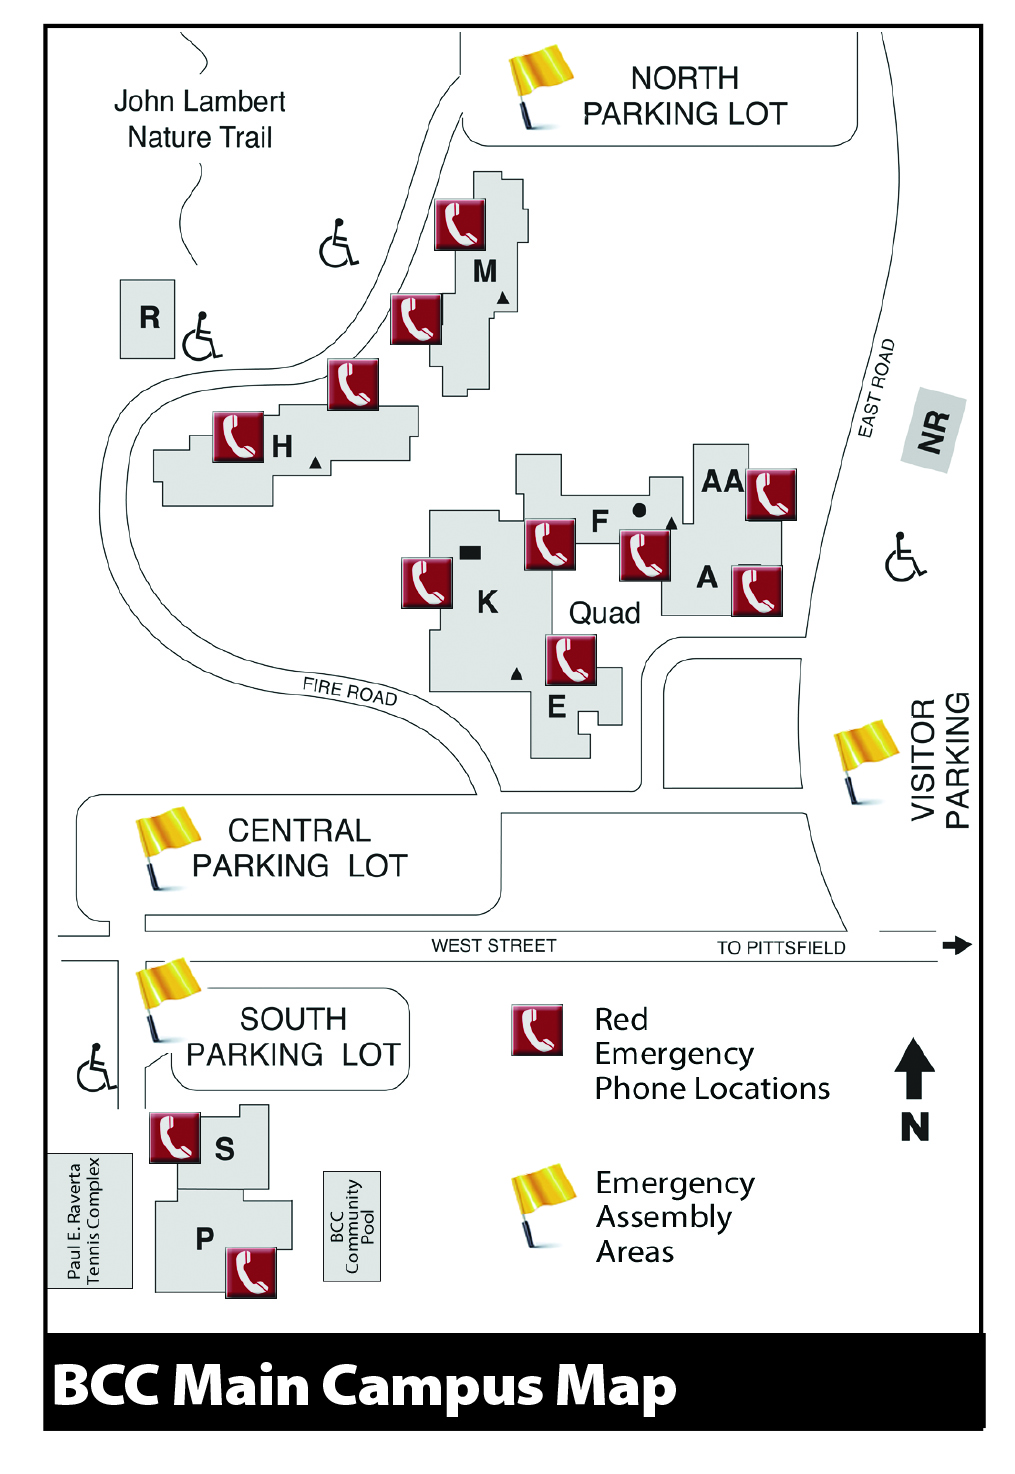 bcc central campus map Emergencies Evacuations Berkshire Community College bcc central campus map